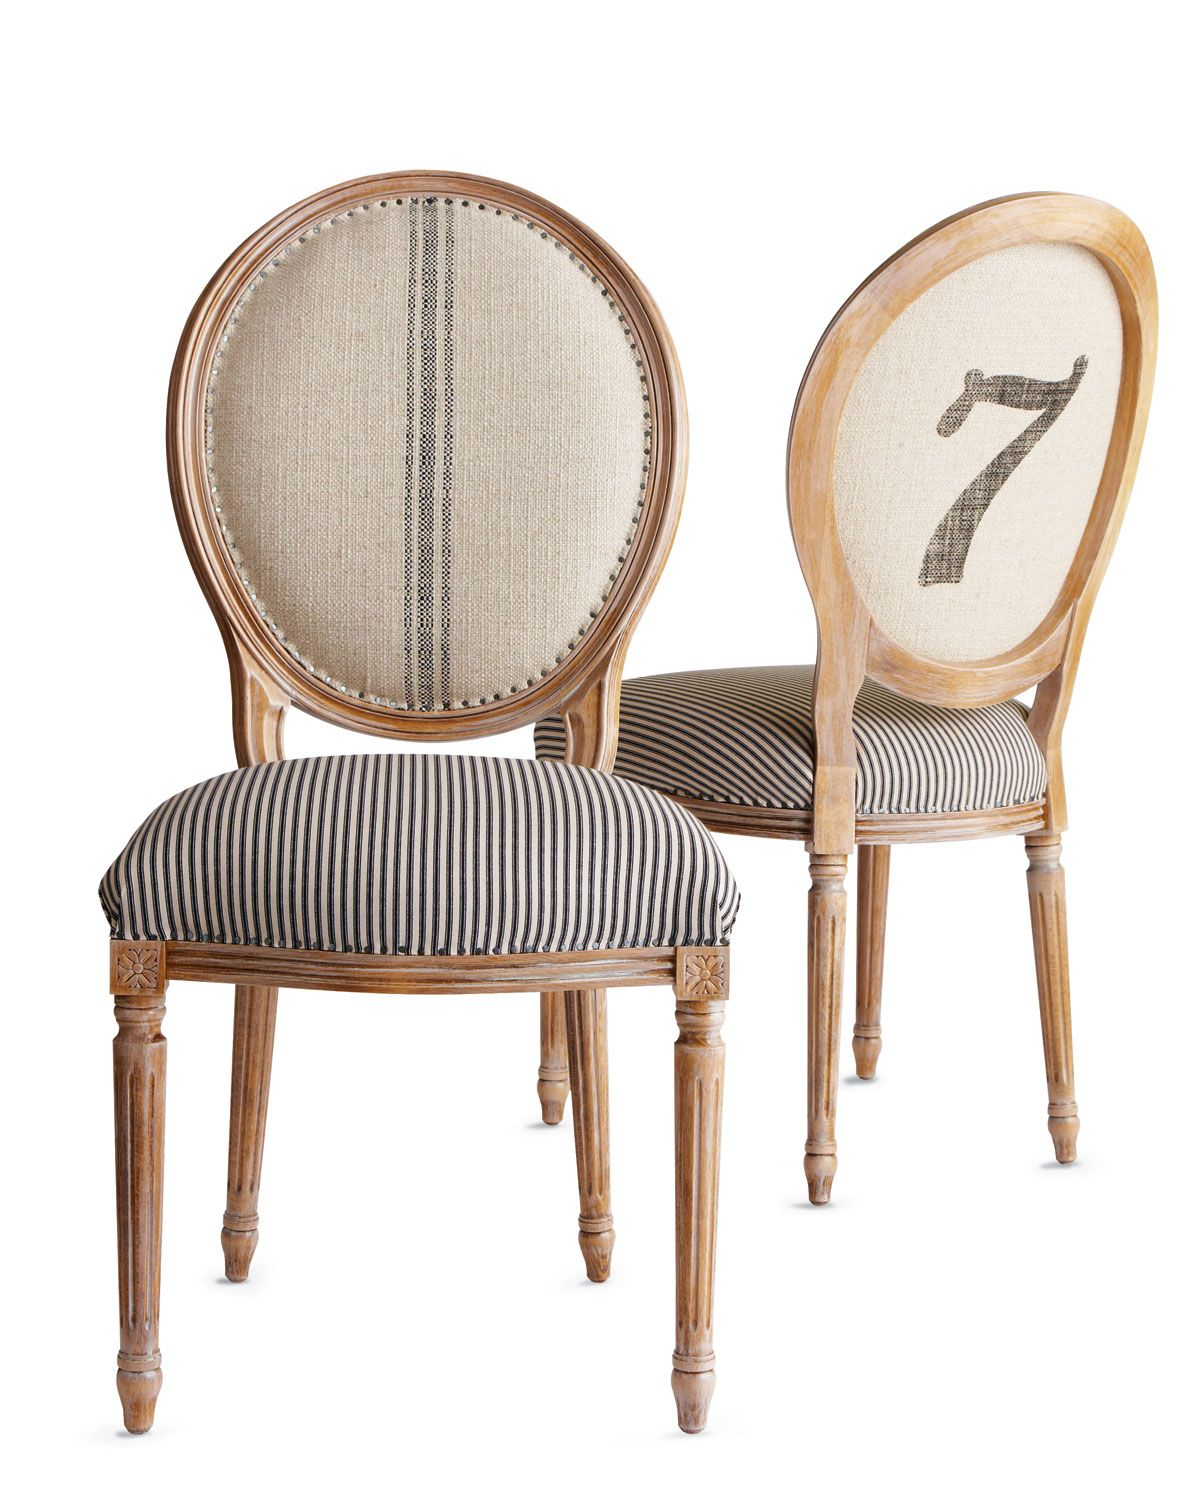 Upholster Dining Room Chairs: French Laundry Home Chairs